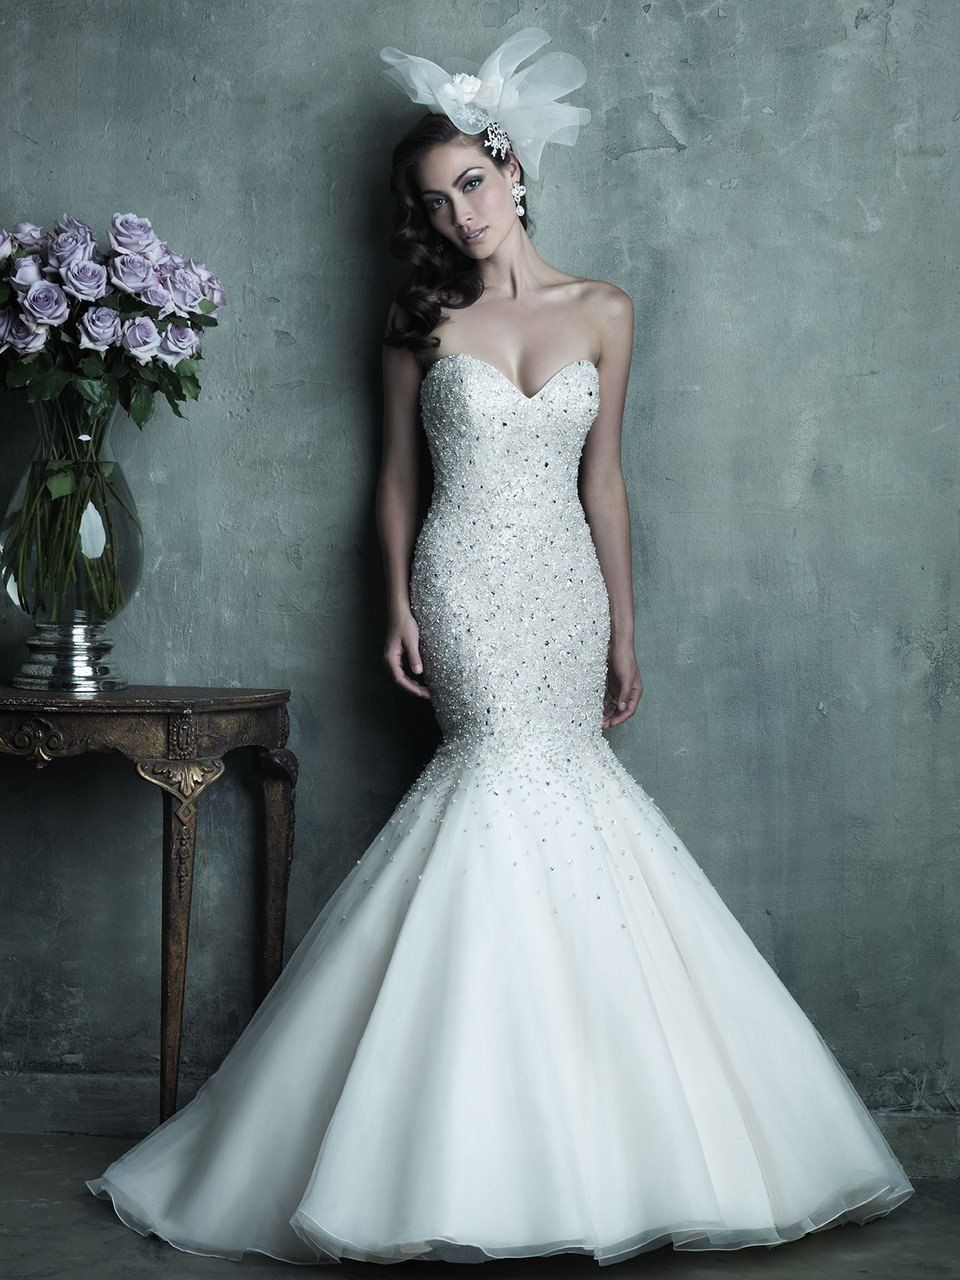 Bridals by lori allure couture bridals 0126431 call for pricing bridals by lori allure couture bridals 0126431 call for pricing http sequin wedding dressesbridal ombrellifo Choice Image